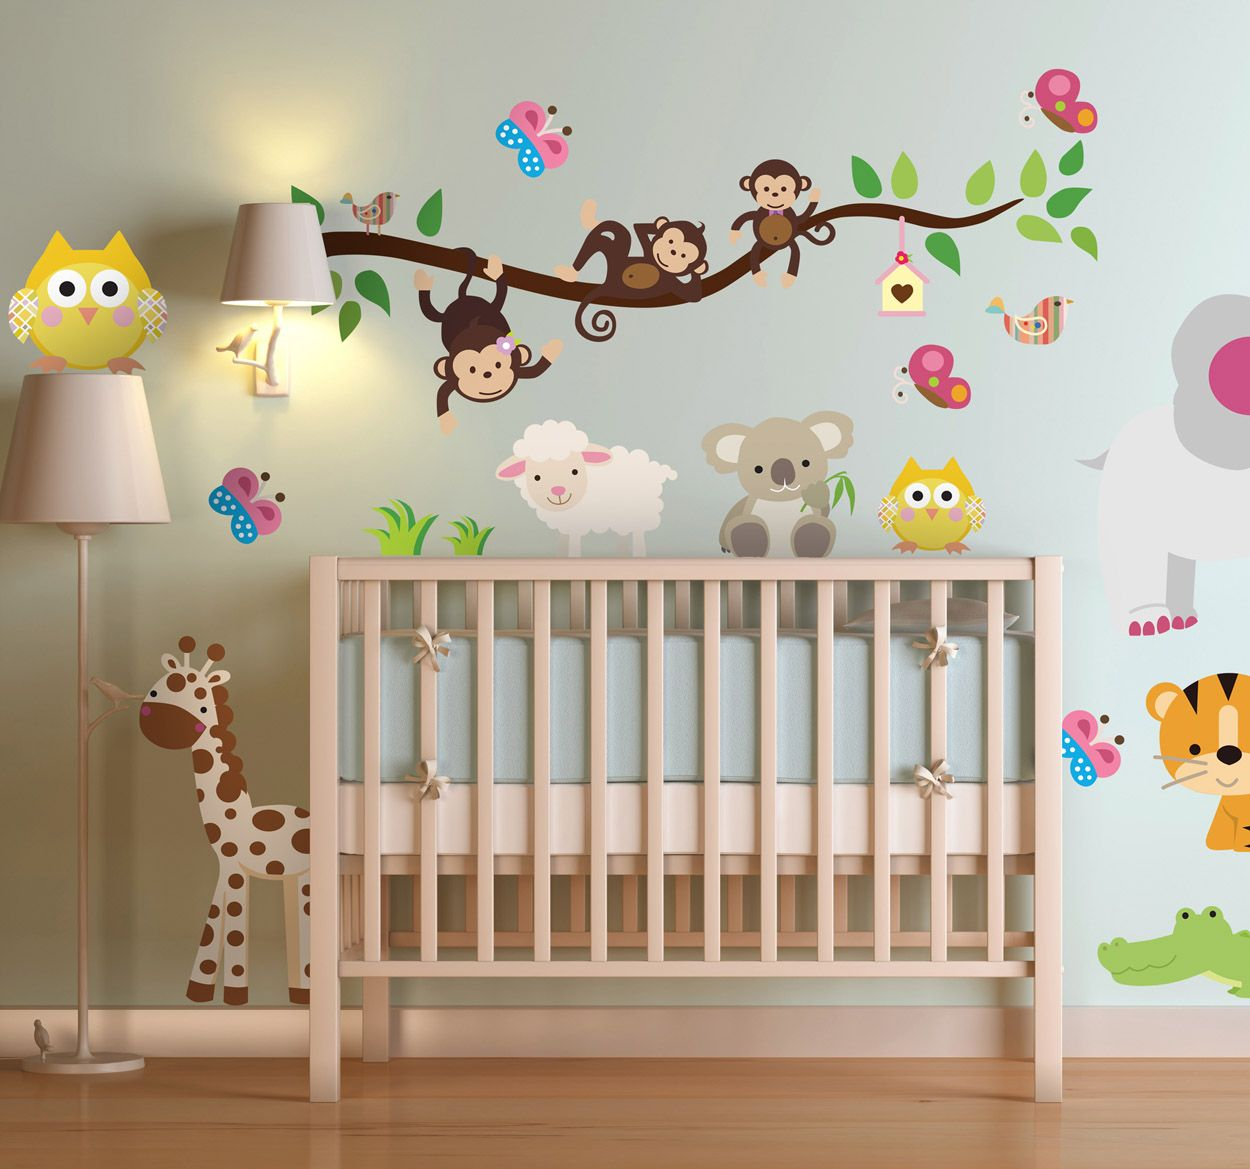 a brilliant animal wall sticker illustrating different animals a brilliant animal wall sticker illustrating different jungle animals having fun ideal for decorating your child s nursery room